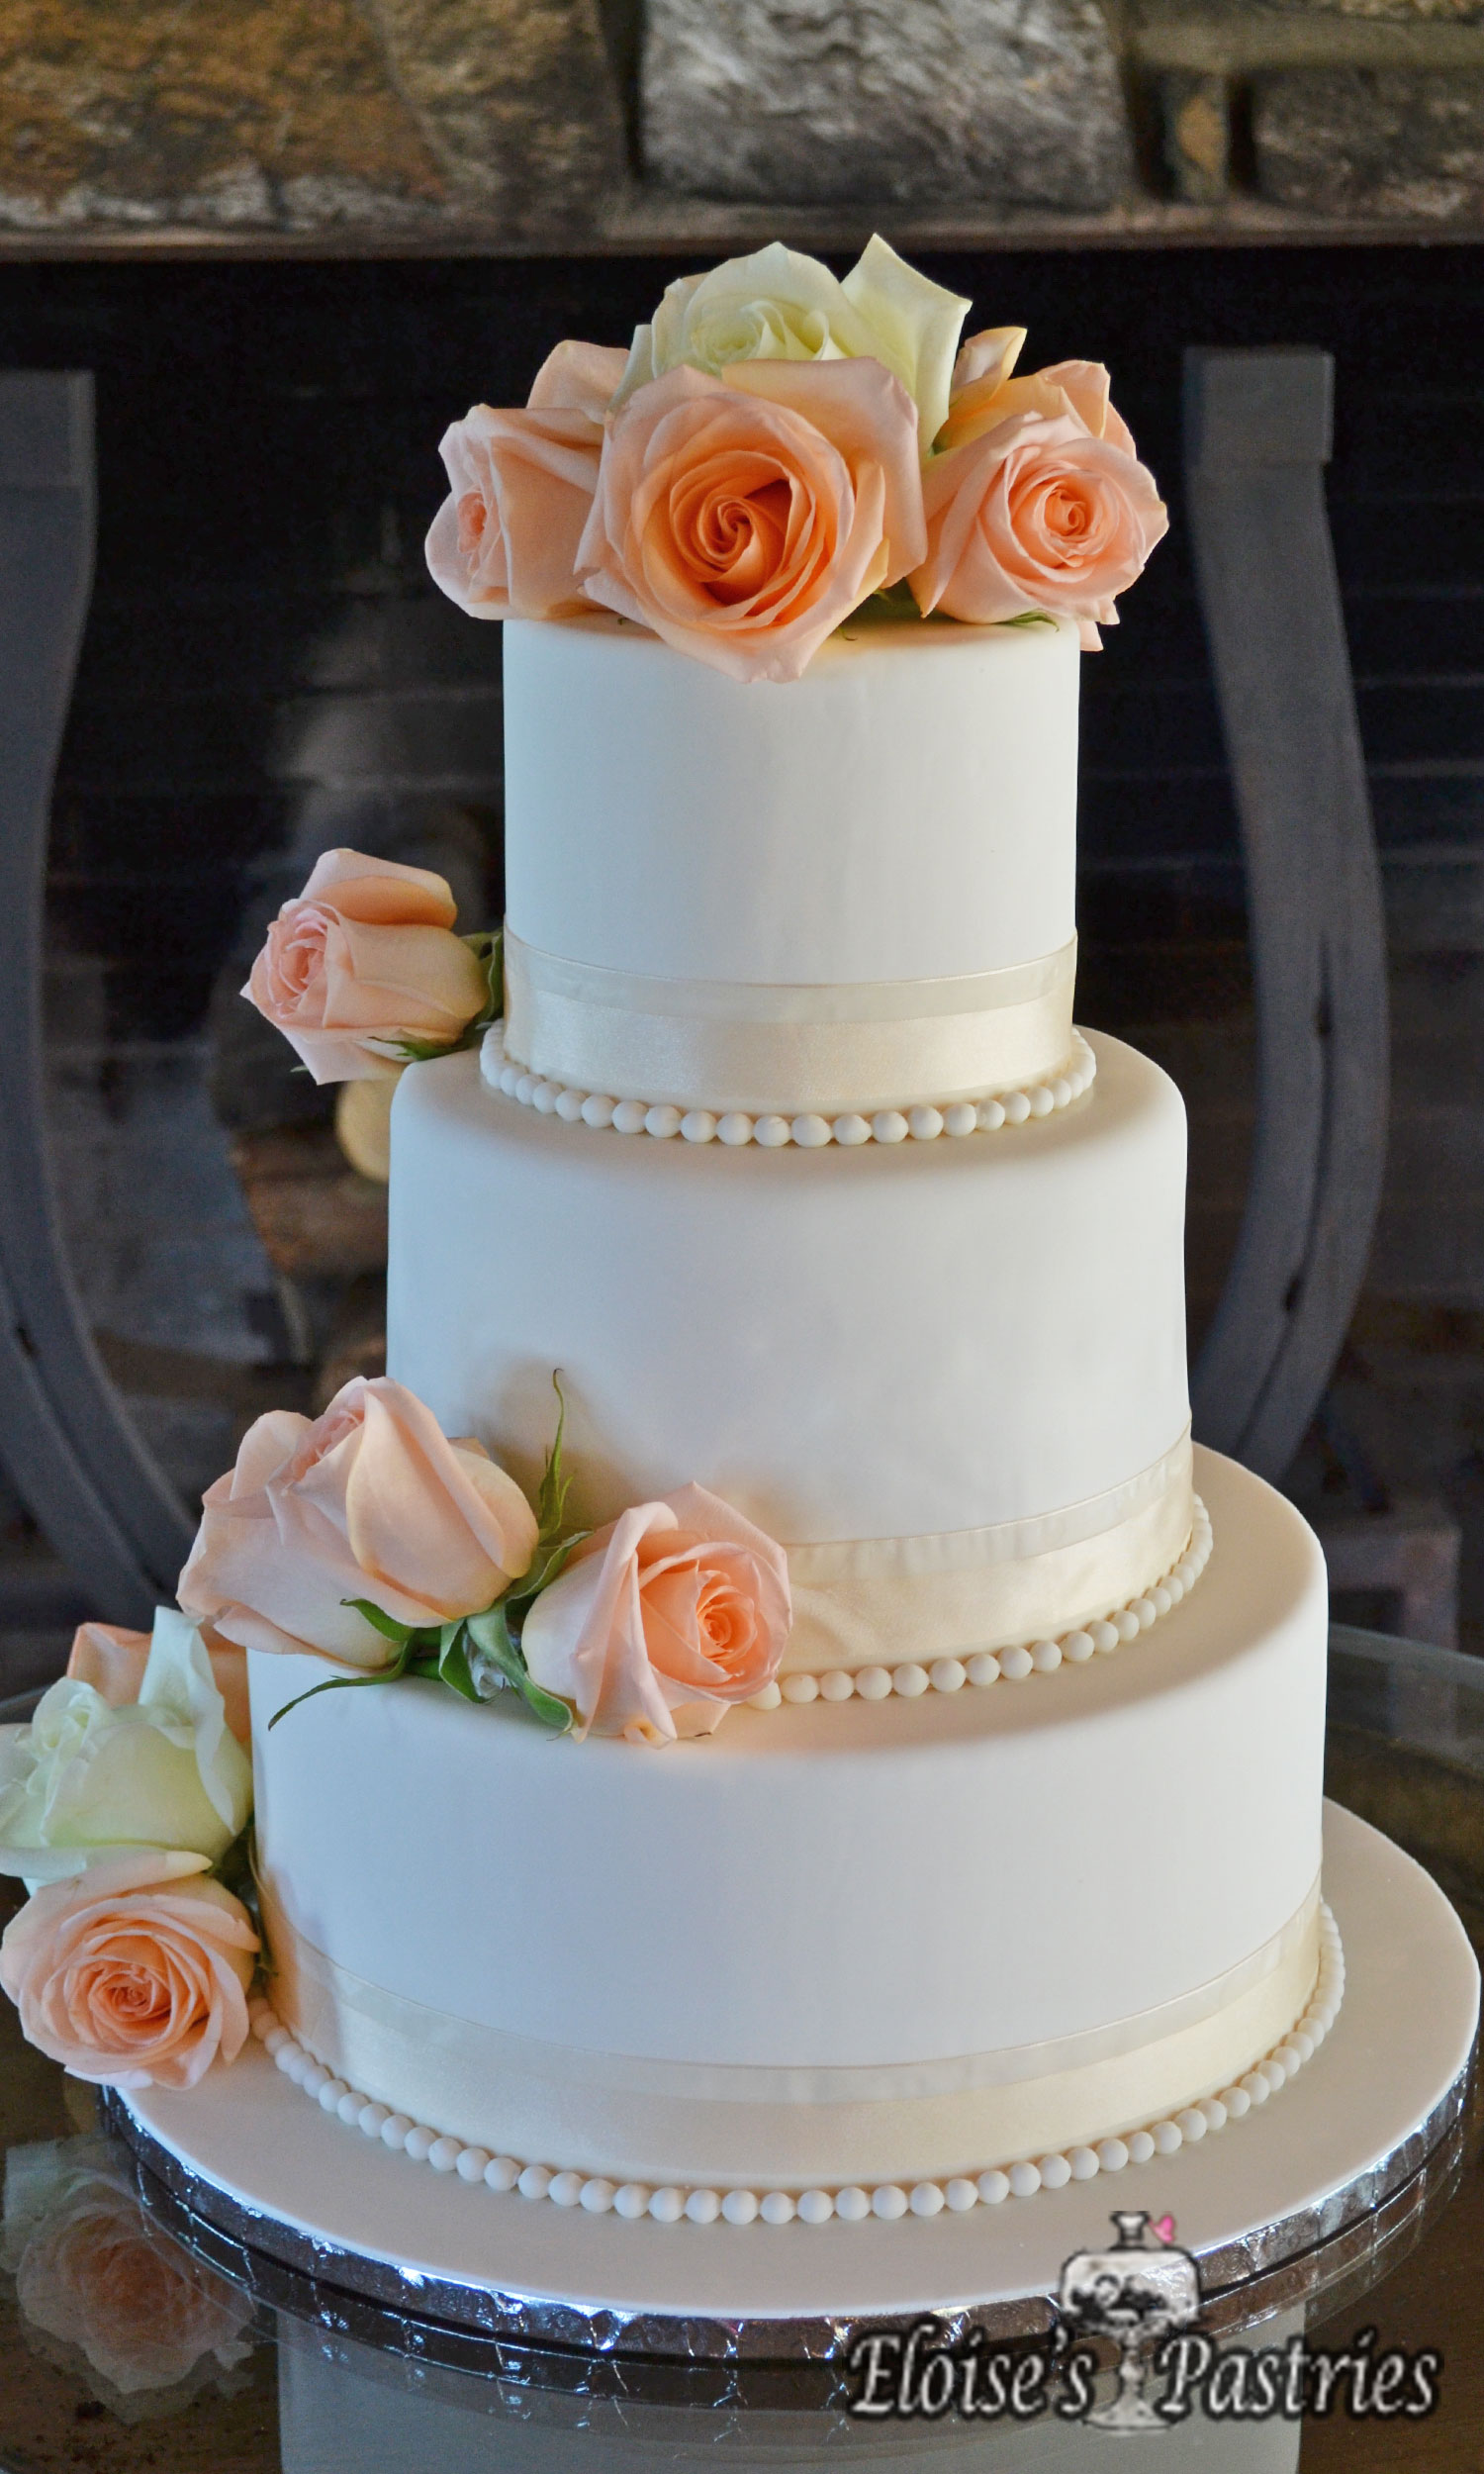 Classic Wedding Cake with Roses